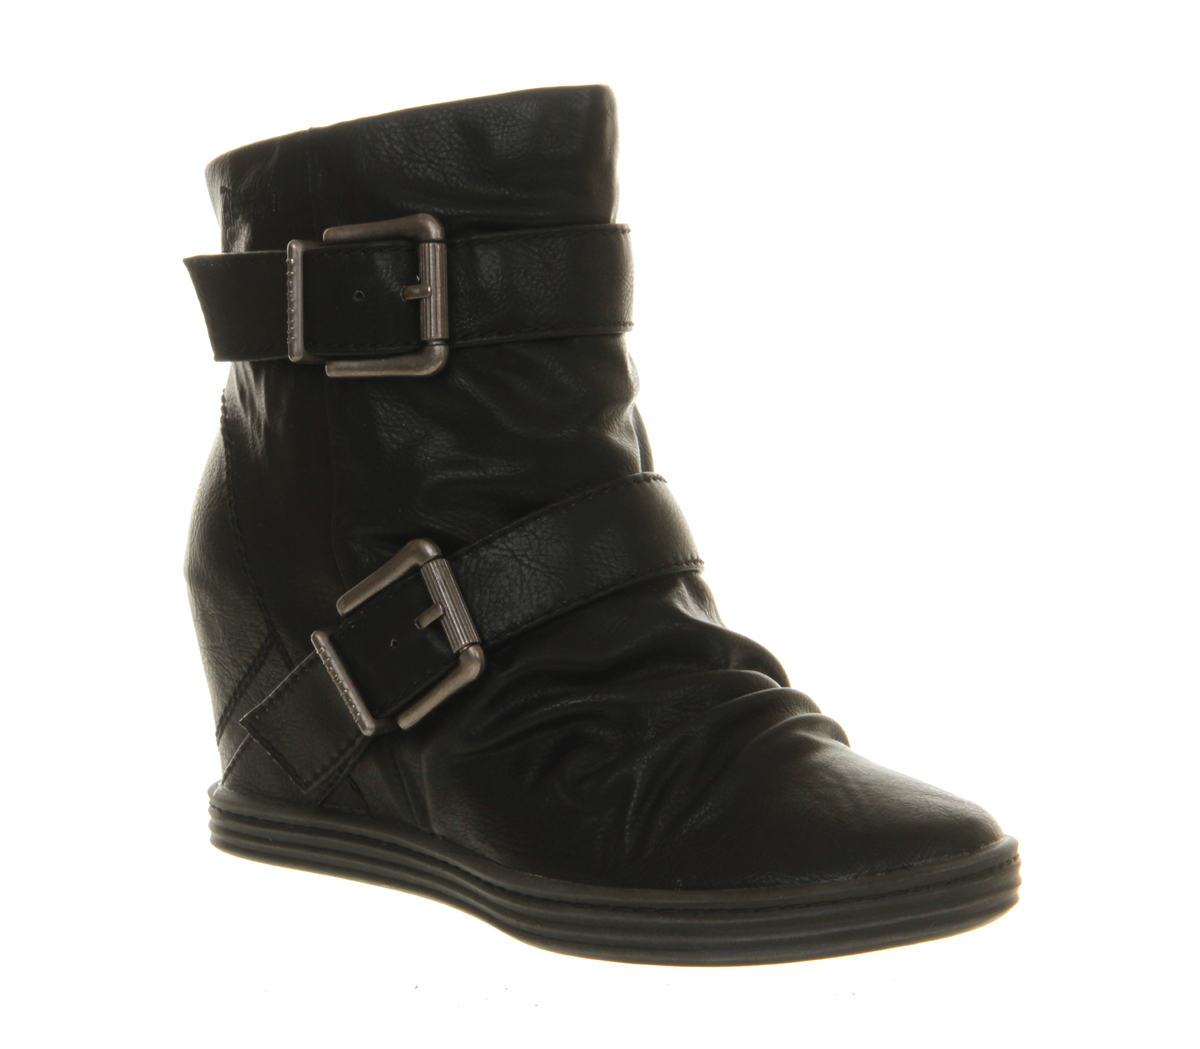 Womens-Blowfish-Tugo-Wedge-Sneaker-BLACK-OLD-SADDLE-Boots